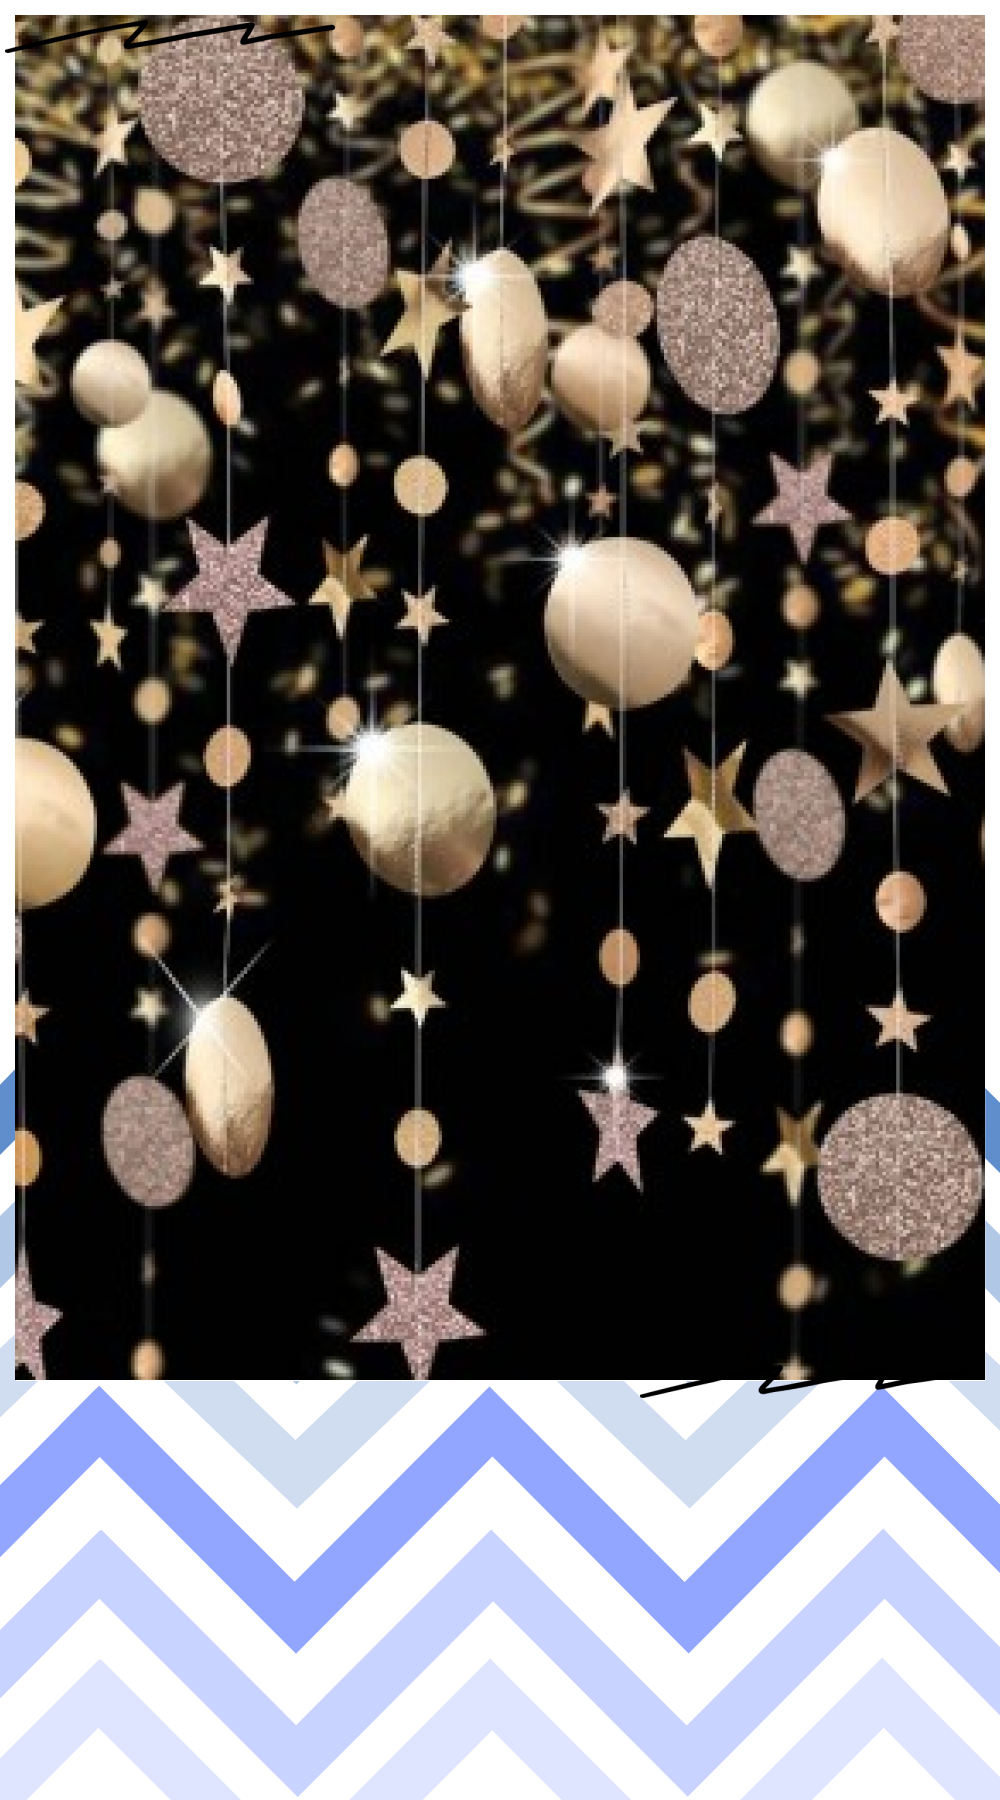 Photo of Christmas Decorations for Home 4M Twinkle Star Snowflake Paper Garlands Pendant New Year 2020 Decor Noel Navidad Ornaments Kerst